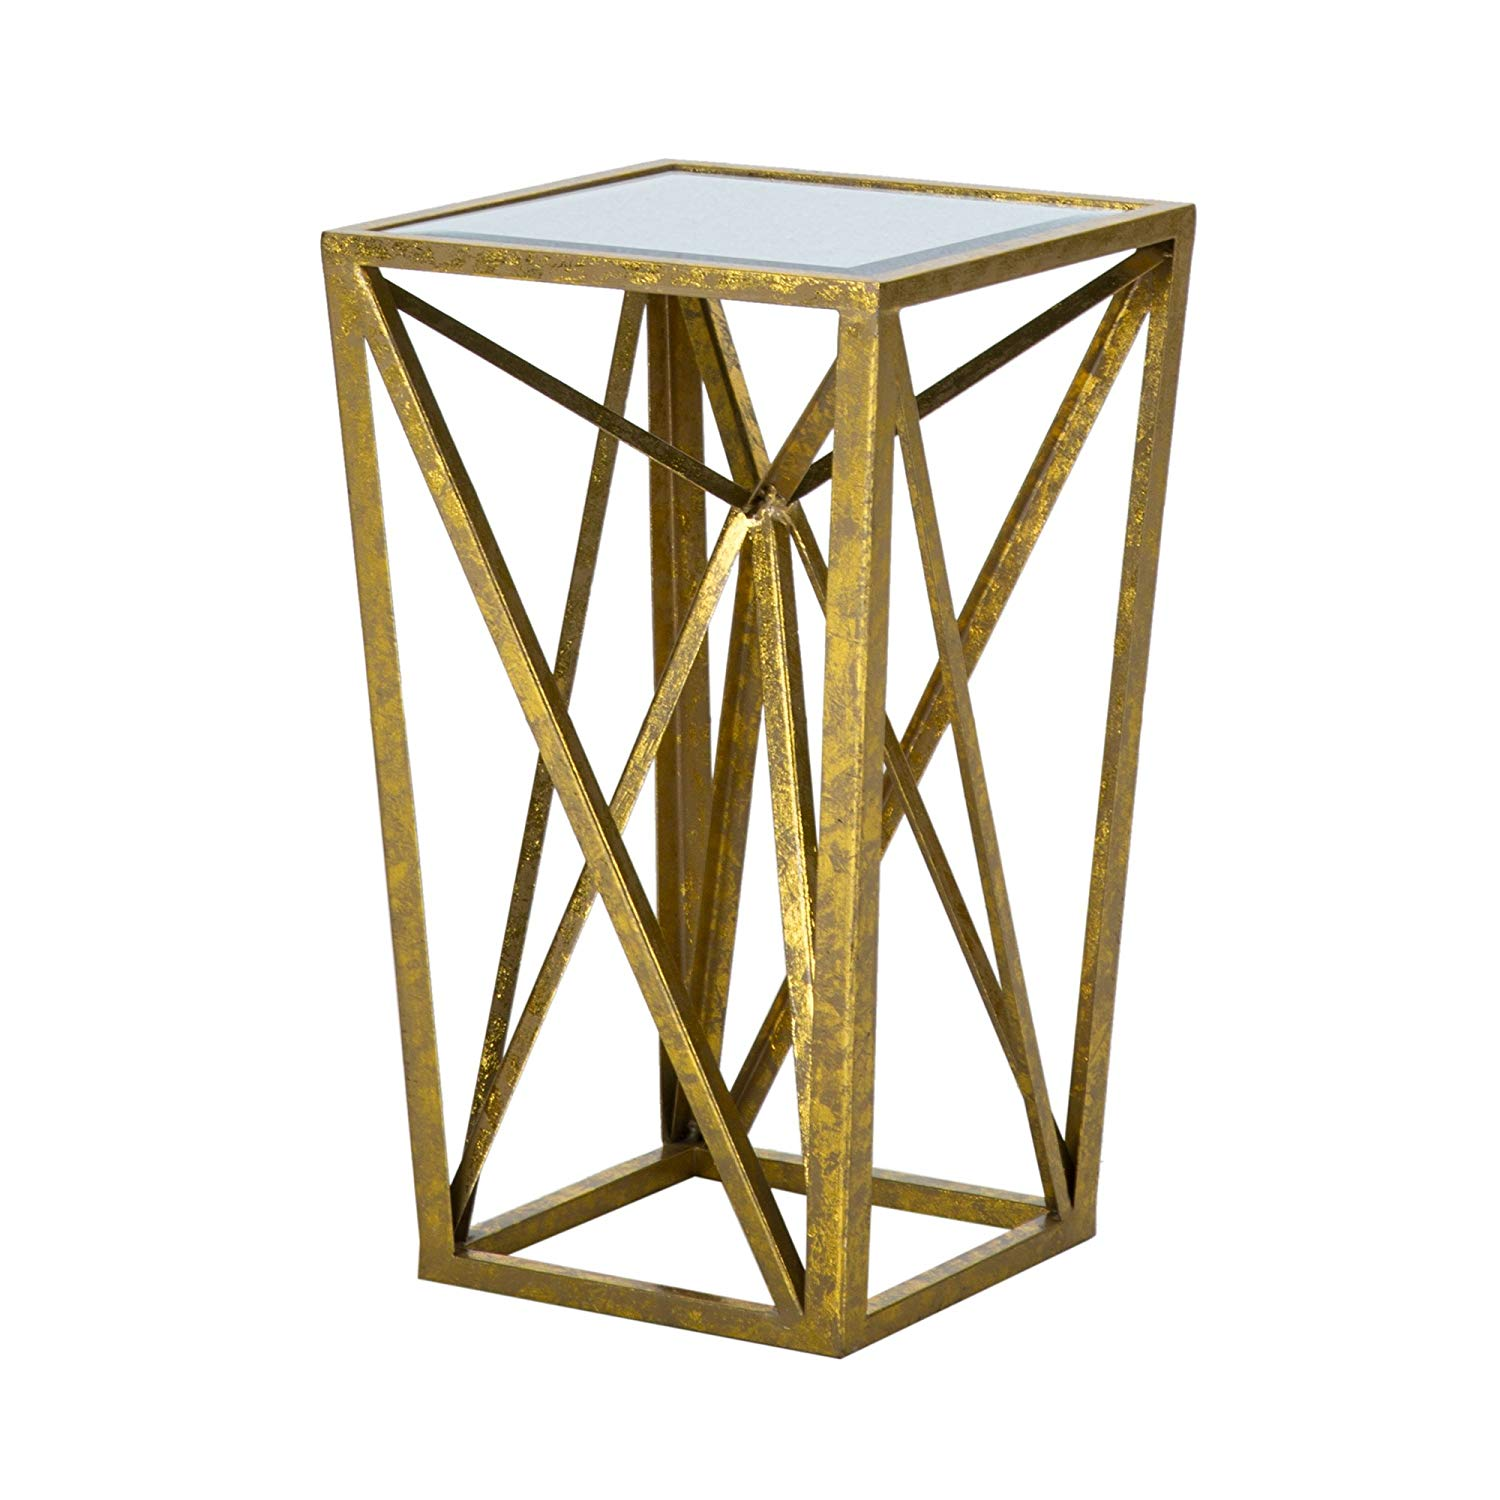 madison park zee accent tables mirror glass metal table and side gold angular design modern style end piece top hollow round ikea bedroom narrow sofa leather sectional edmonton